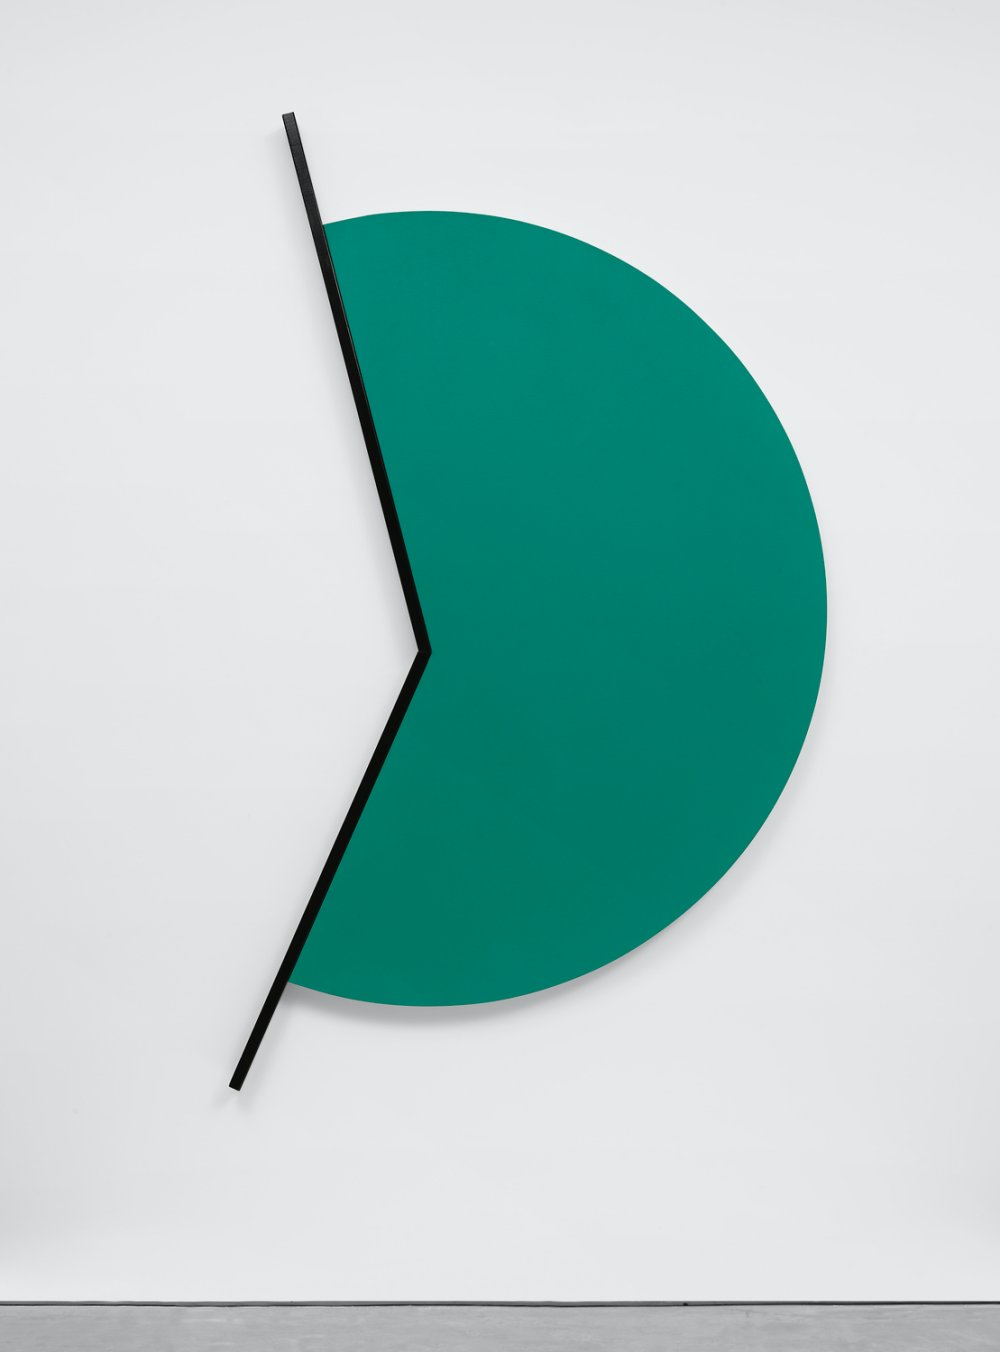 Curve for Blue Green